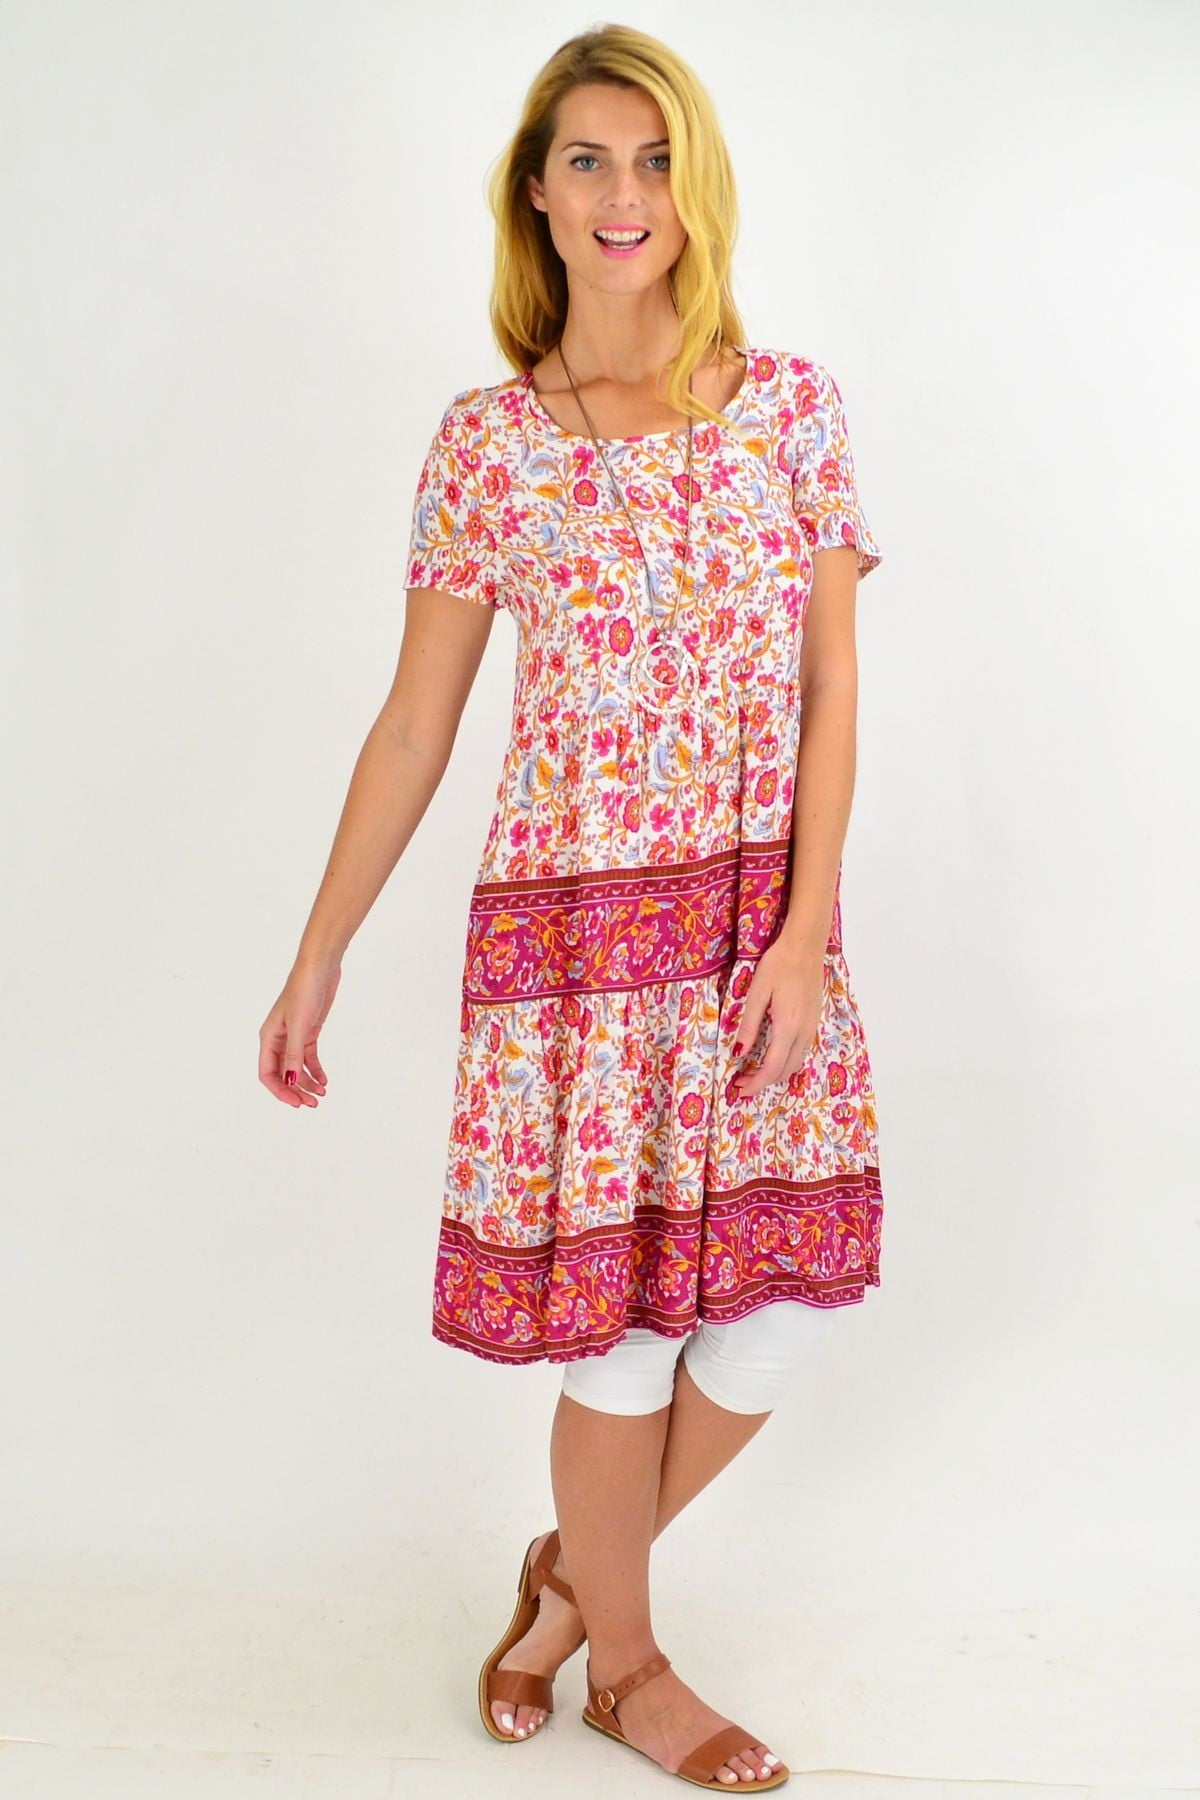 Pink Stripe Floral Ruffle Tunic Dress | I Love Tunics | Tunic Tops | Tunic | Tunic Dresses  | womens clothing online